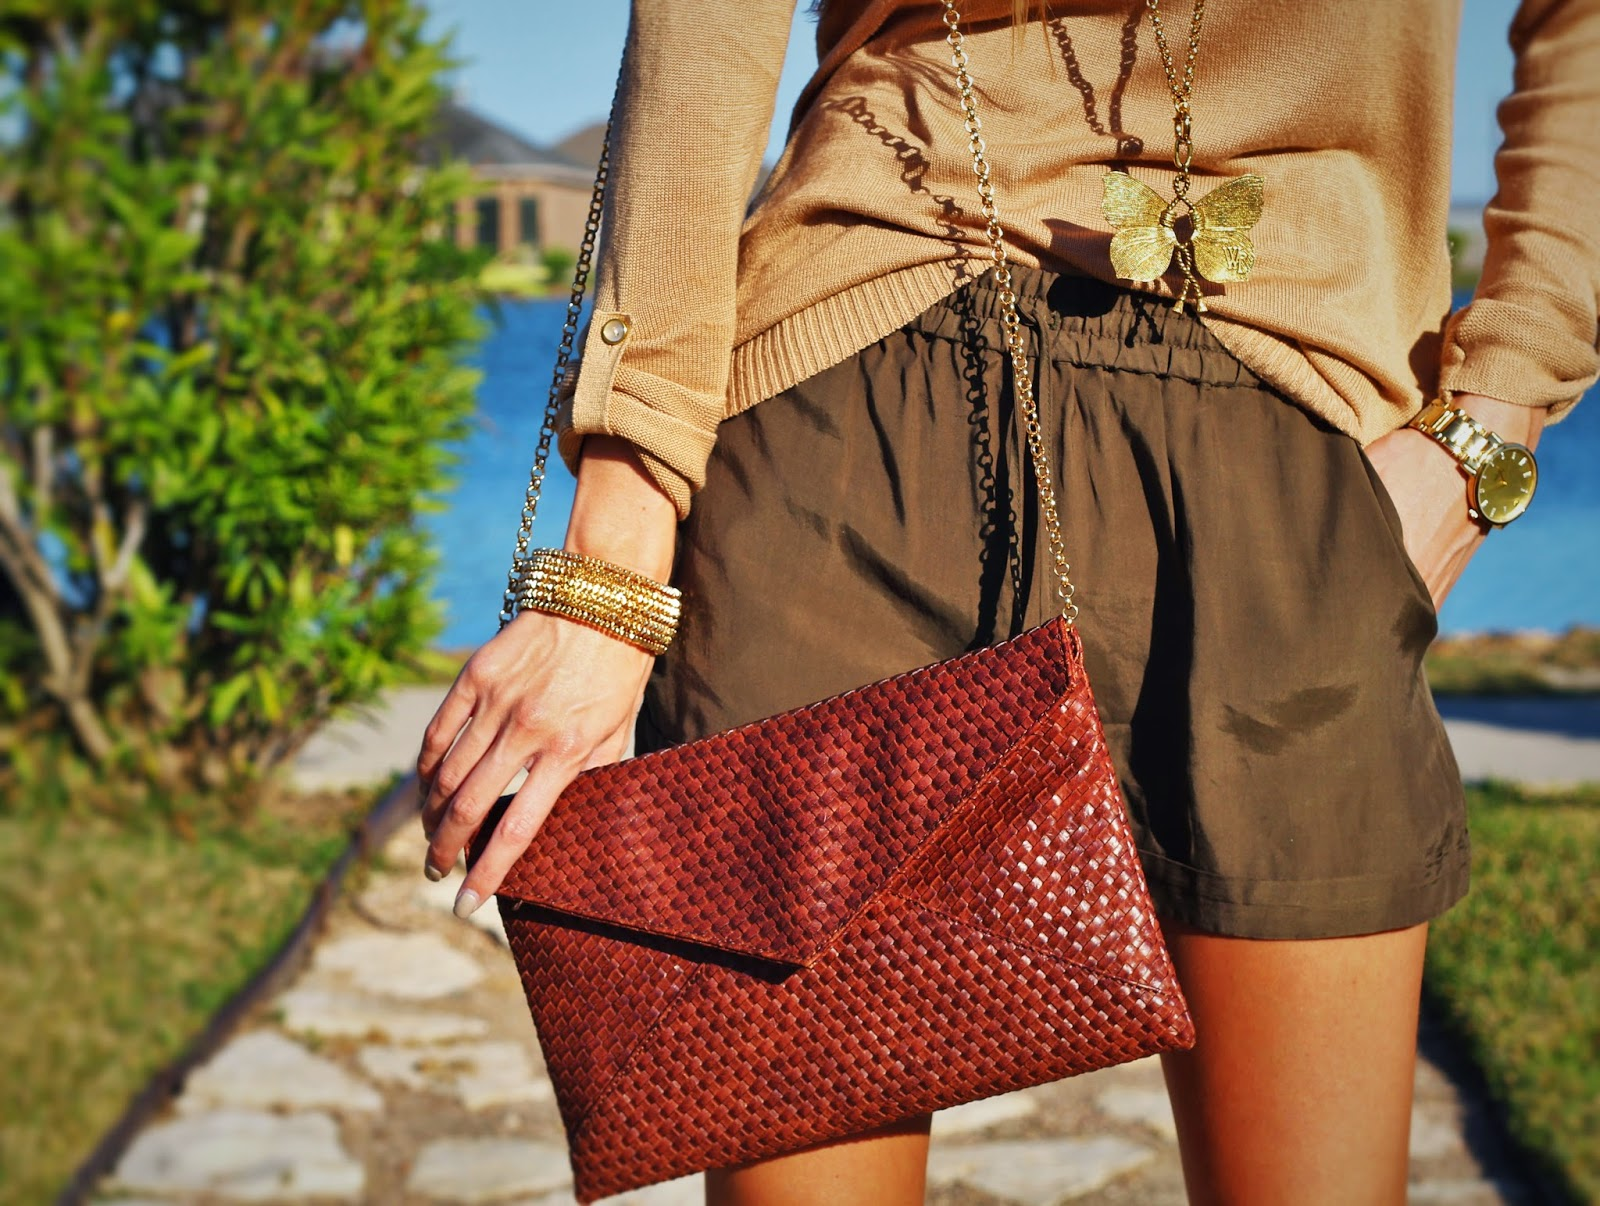 Olive Green Outfit Of The Day: Fab Philosophy By Brittney Blane: Outfit Of The Day: Camel